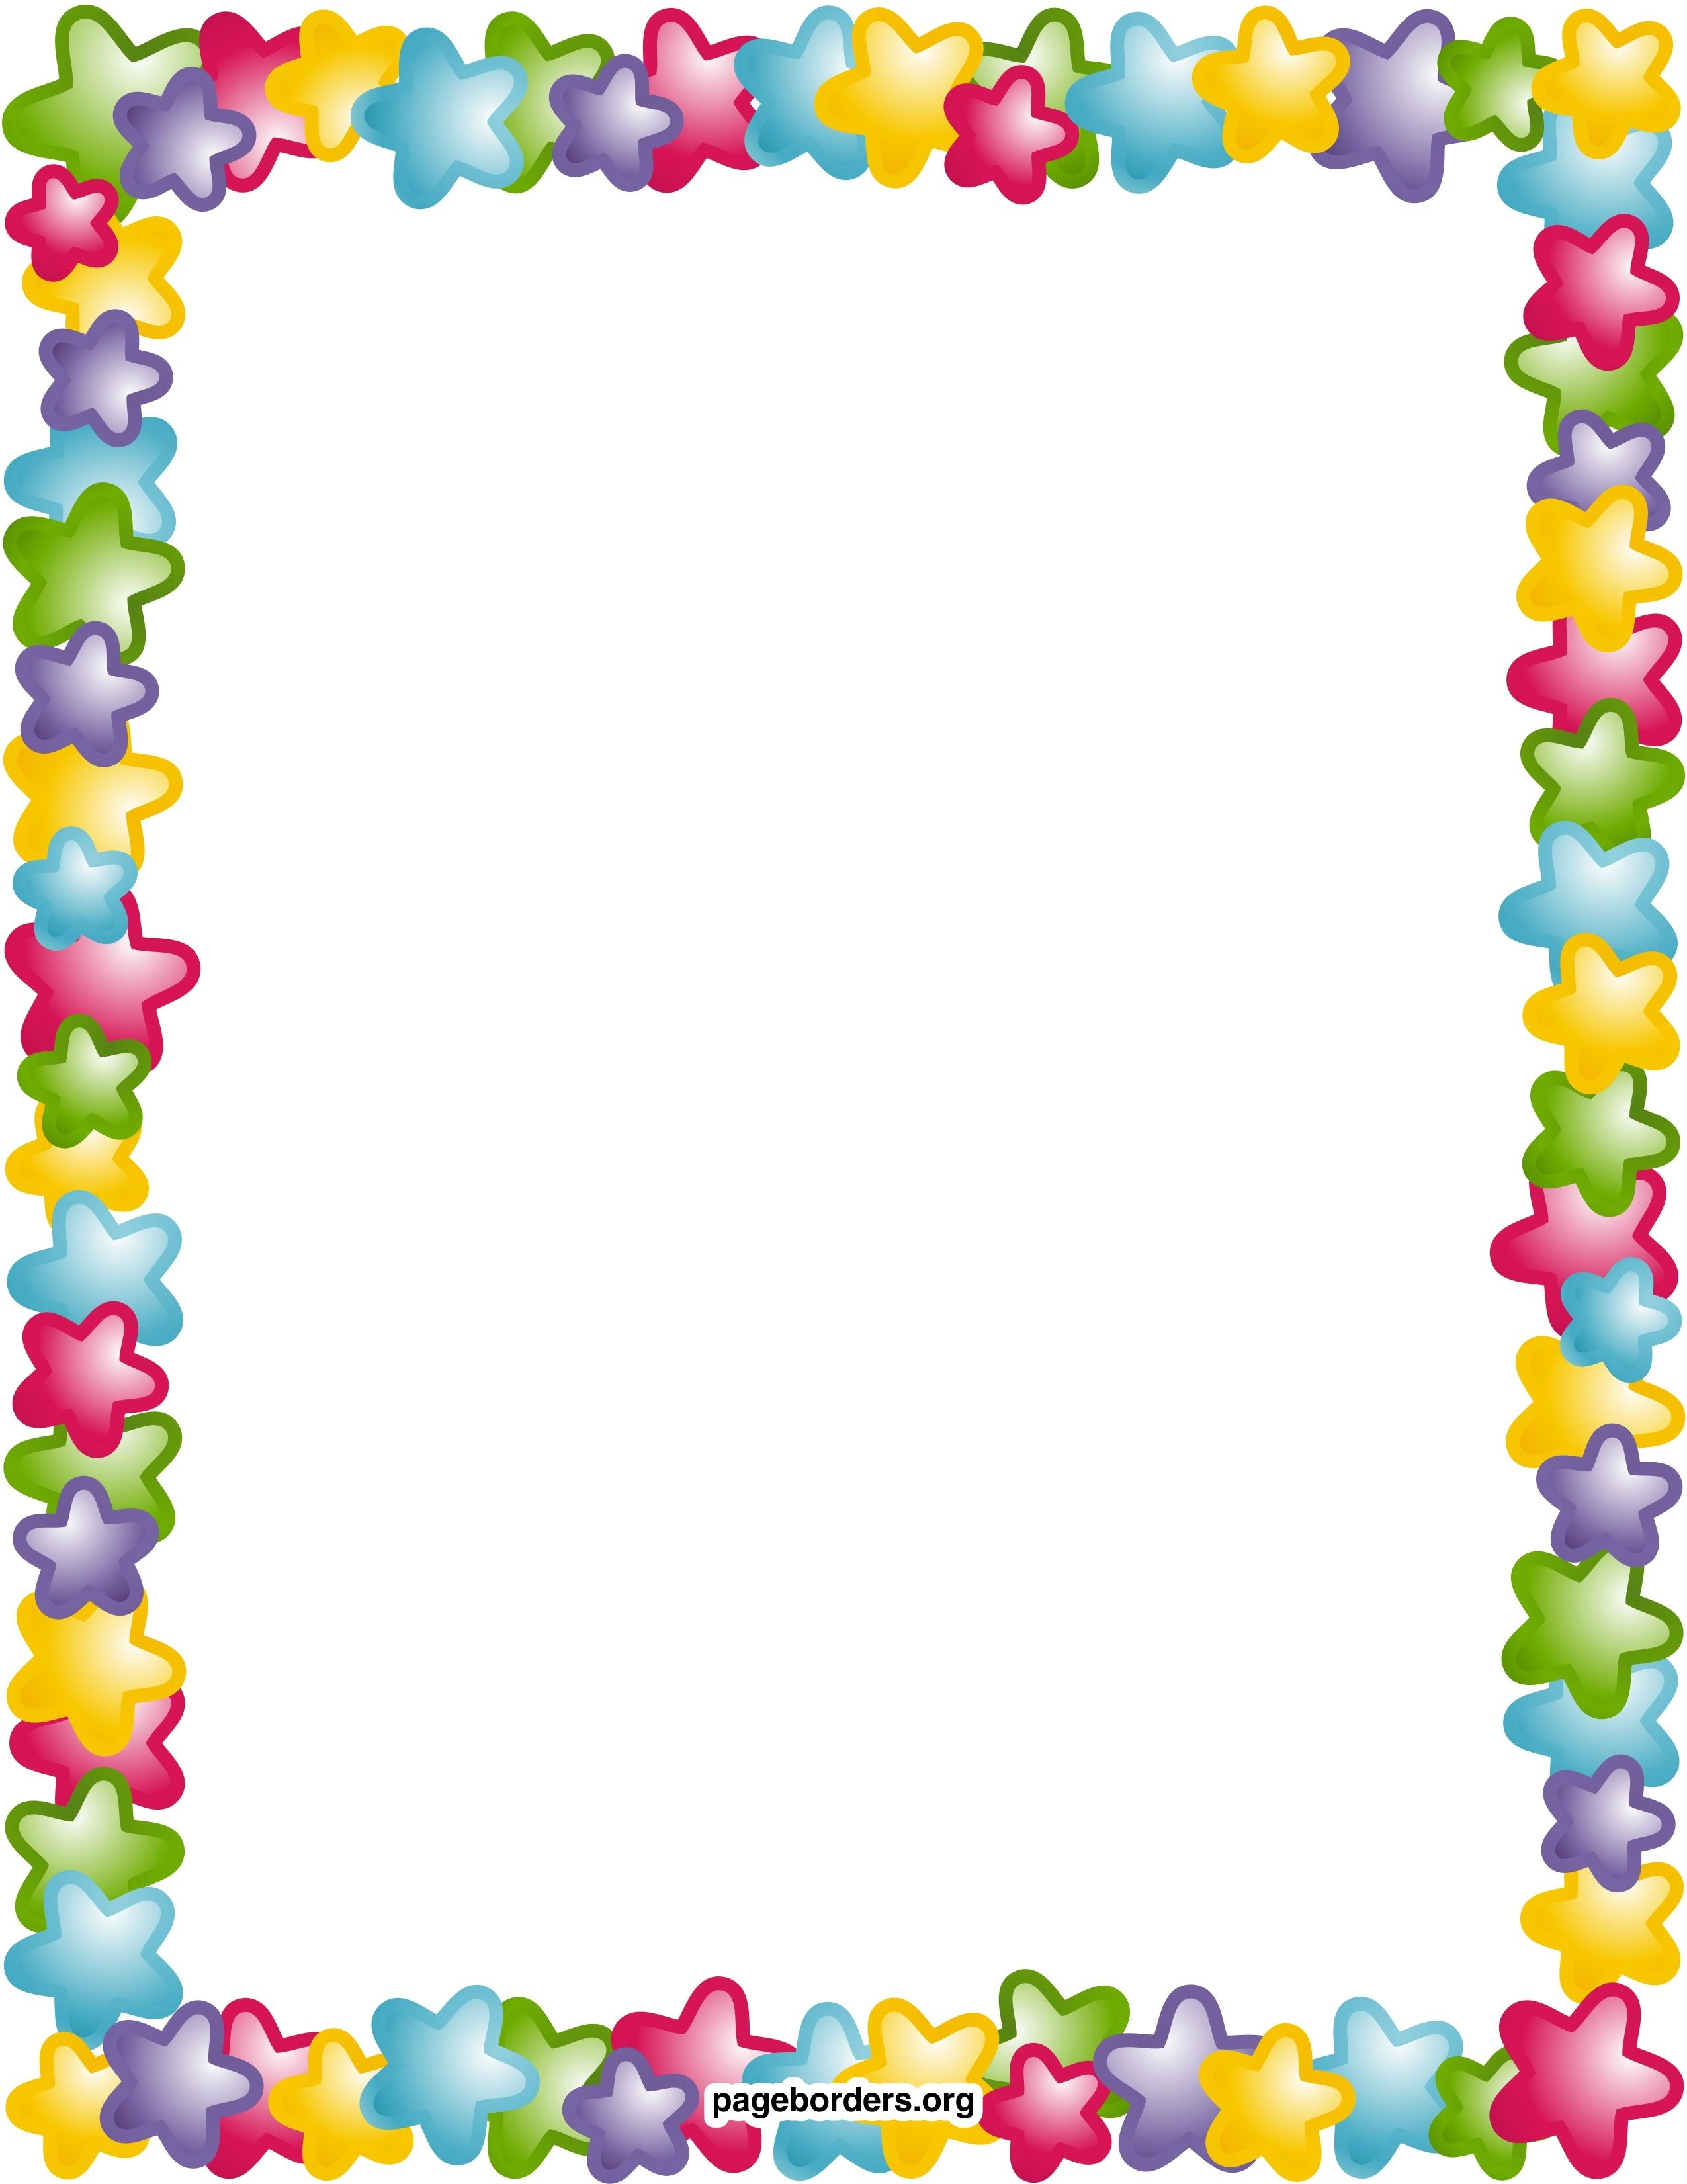 Remarkable Decoration Free Printable Borders And Frames Clip Art - Free Printable Clip Art Borders